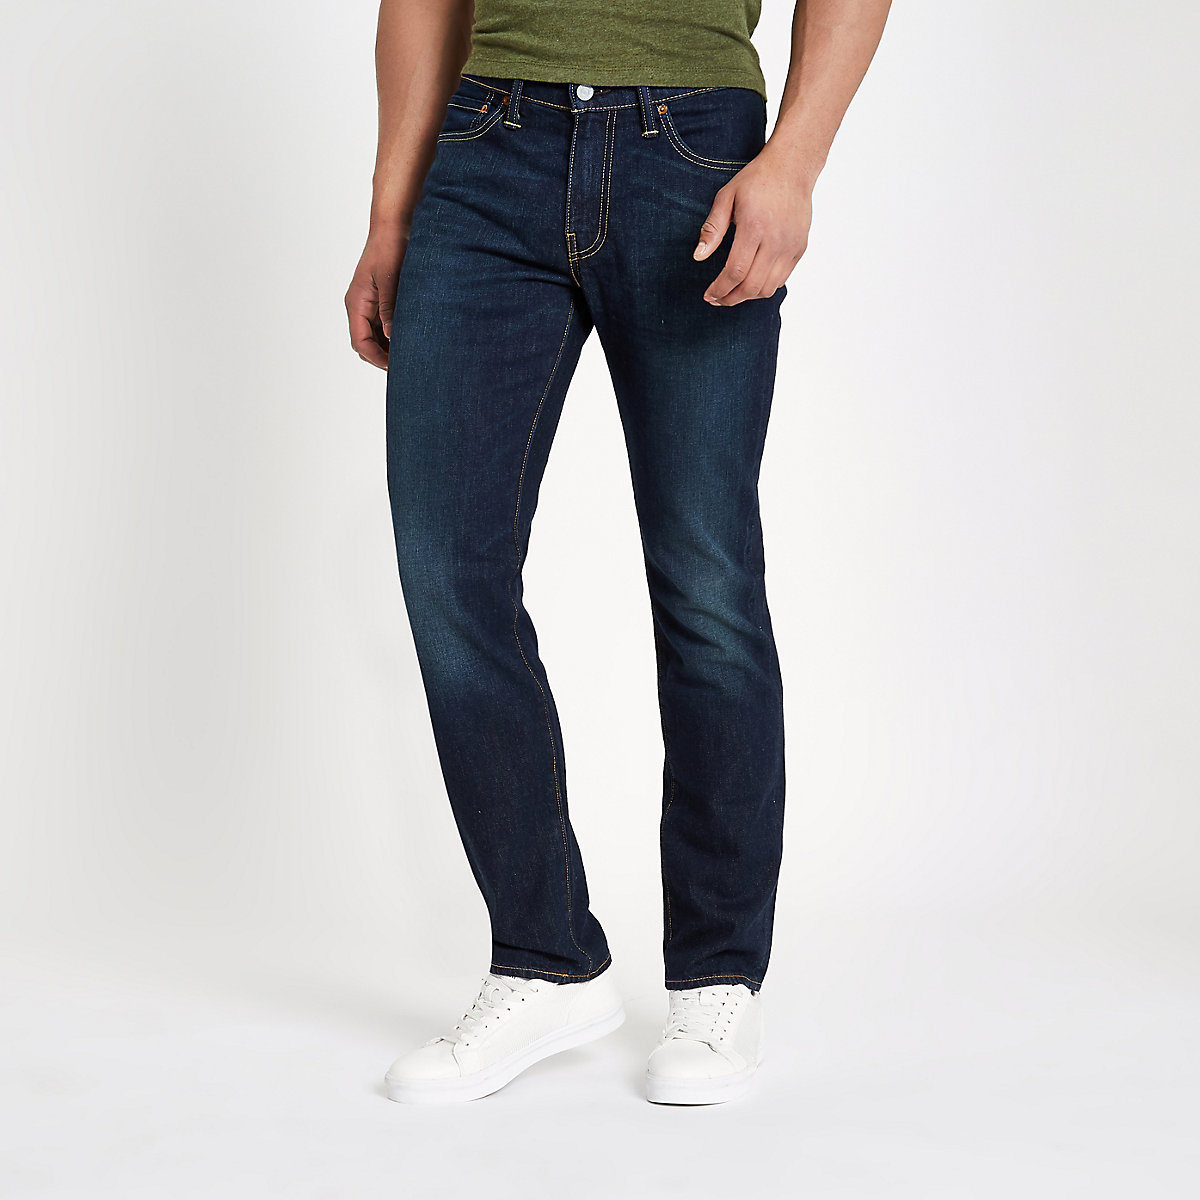 Levi's 511 - Donkerblauwe slim-fit jeans